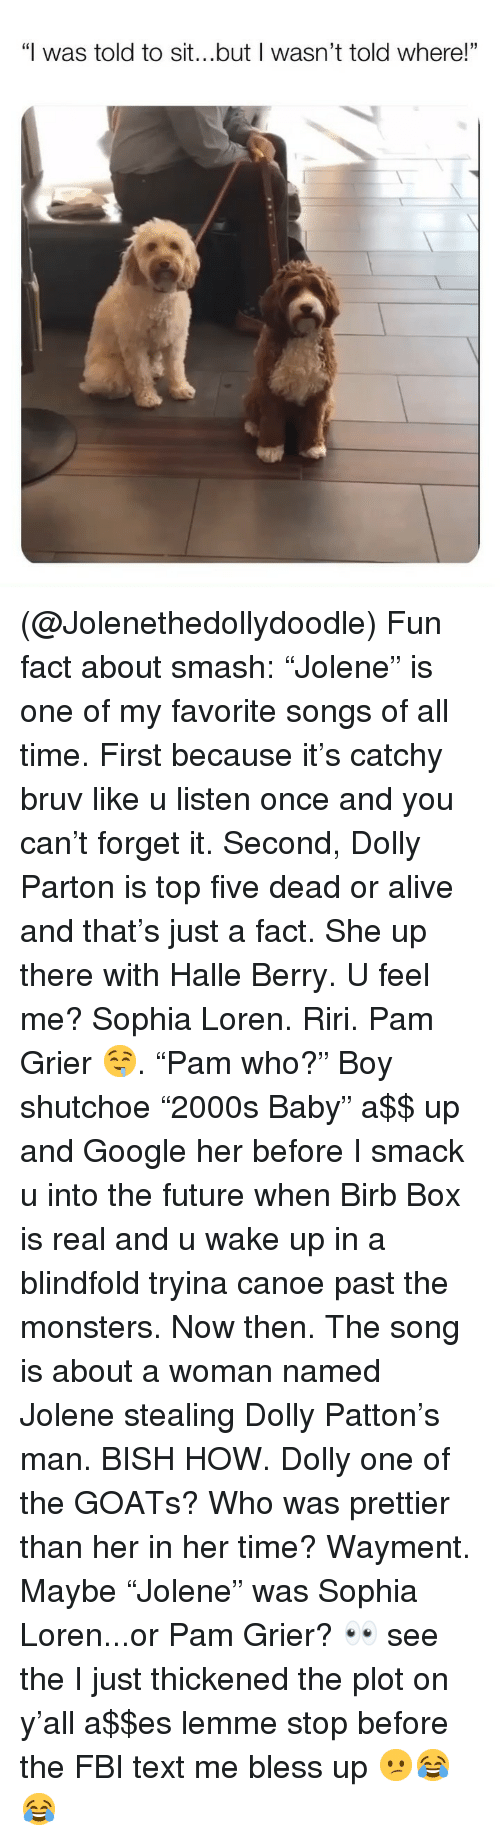 "Alive, Bless Up, and Dead or Alive: ""I was told to sit...but I wasn't told where!""  01 (@Jolenethedollydoodle) Fun fact about smash: ""Jolene"" is one of my favorite songs of all time. First because it's catchy bruv like u listen once and you can't forget it. Second, Dolly Parton is top five dead or alive and that's just a fact. She up there with Halle Berry. U feel me? Sophia Loren. Riri. Pam Grier 🤤. ""Pam who?"" Boy shutchoe ""2000s Baby"" a$$ up and Google her before I smack u into the future when Birb Box is real and u wake up in a blindfold tryina canoe past the monsters. Now then. The song is about a woman named Jolene stealing Dolly Patton's man. BISH HOW. Dolly one of the GOATs? Who was prettier than her in her time? Wayment. Maybe ""Jolene"" was Sophia Loren...or Pam Grier? 👀 see the I just thickened the plot on y'all a$$es lemme stop before the FBI text me bless up 😕😂😂"